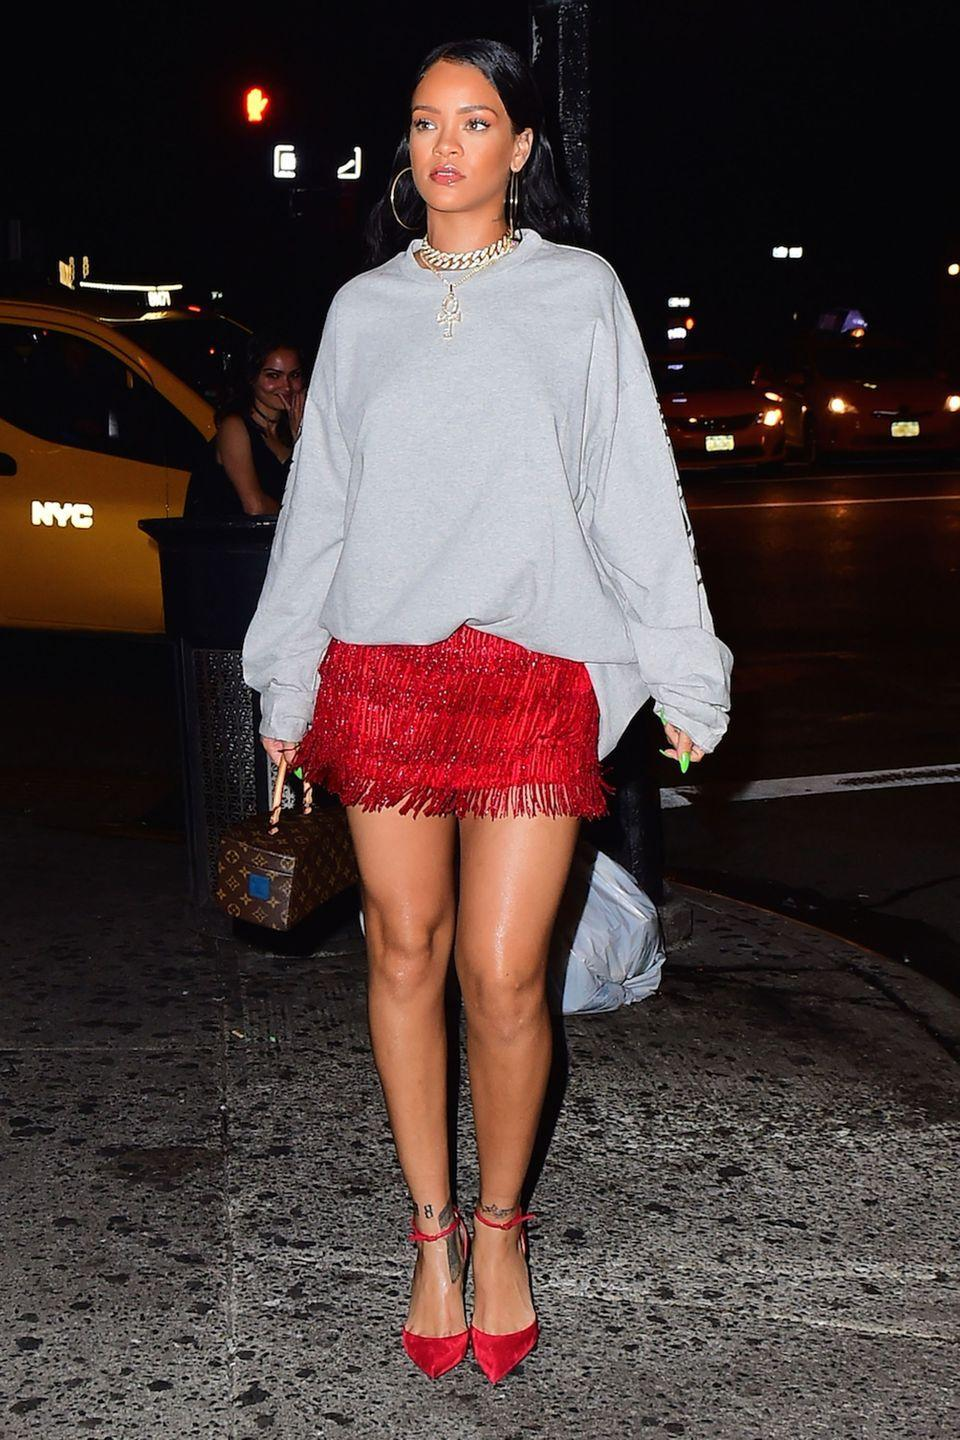 <p>In a grey sweatshirt, red fringed skirt, gold hoop earrings and chain necklace, red pointed-toe ankle strap heels and a Louis Vuitton bag while out in NYC. </p>